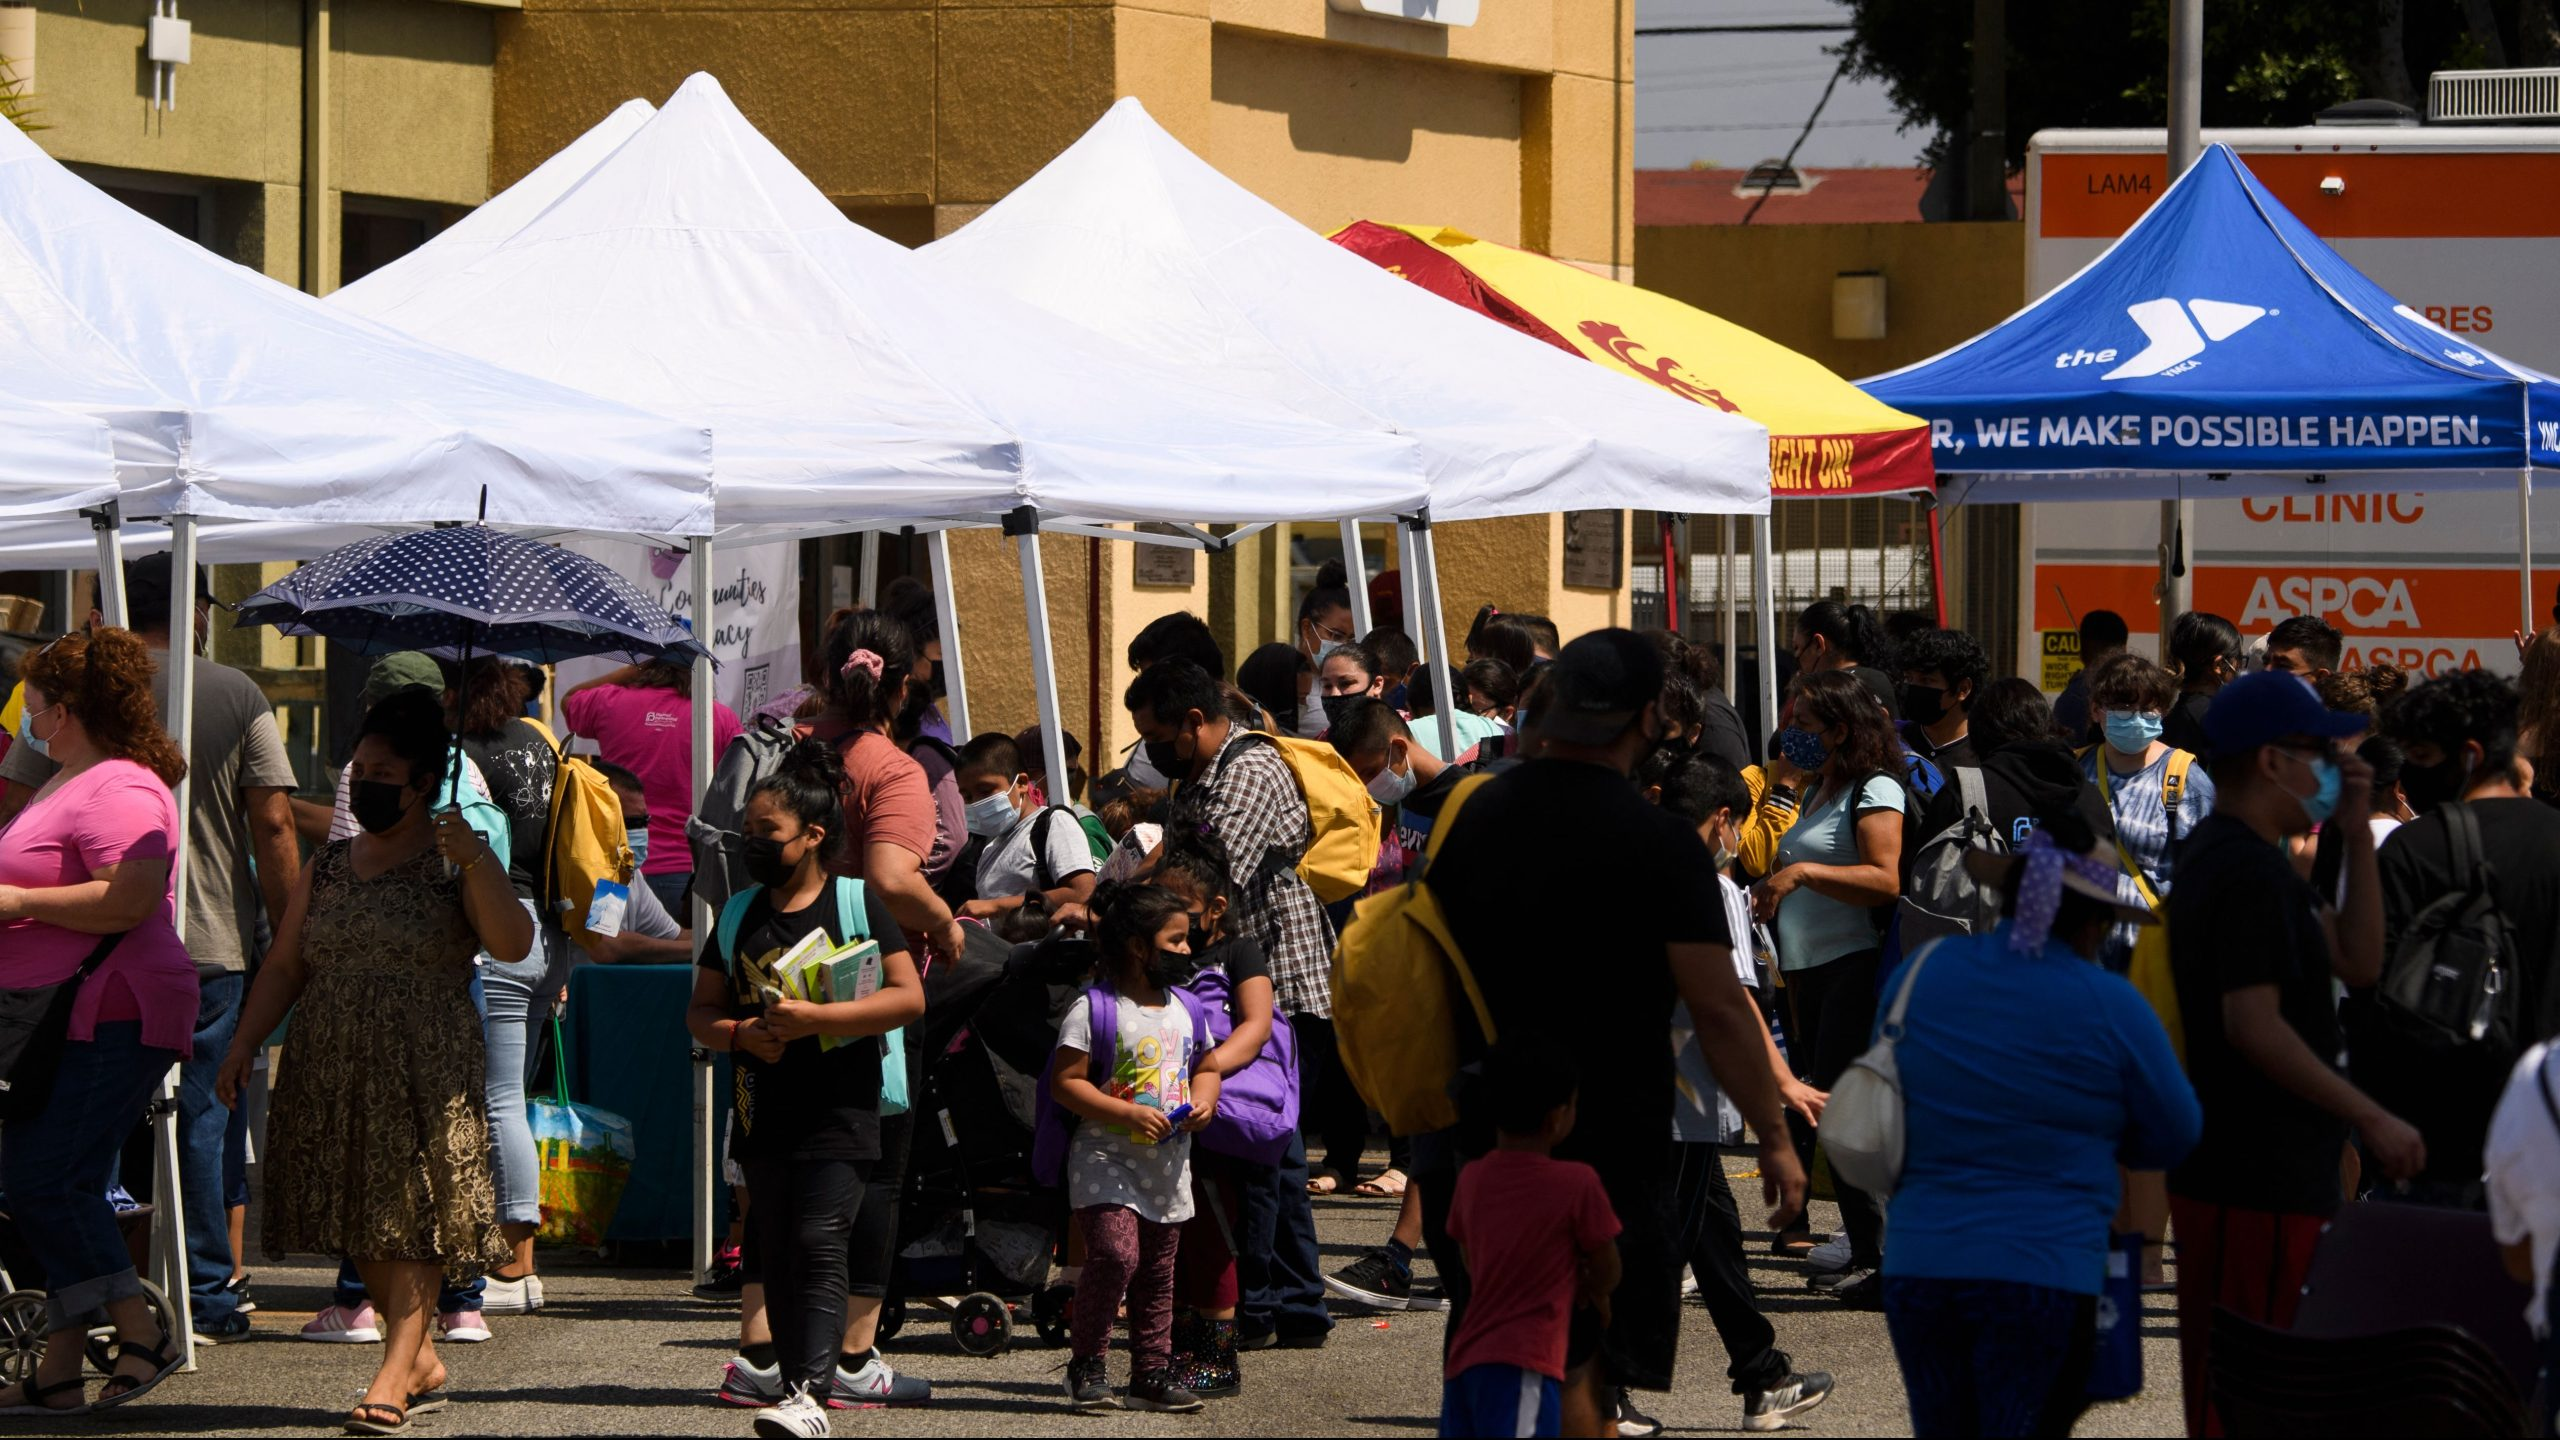 Families attend a back to school event offering school supplies, COVID-19 vaccinations, face masks and other resources for children and their families at the Weingart East Los Angeles YMCA on Aug. 7, 2021. (Patrick T. Fallon / AFP / Getty Images)